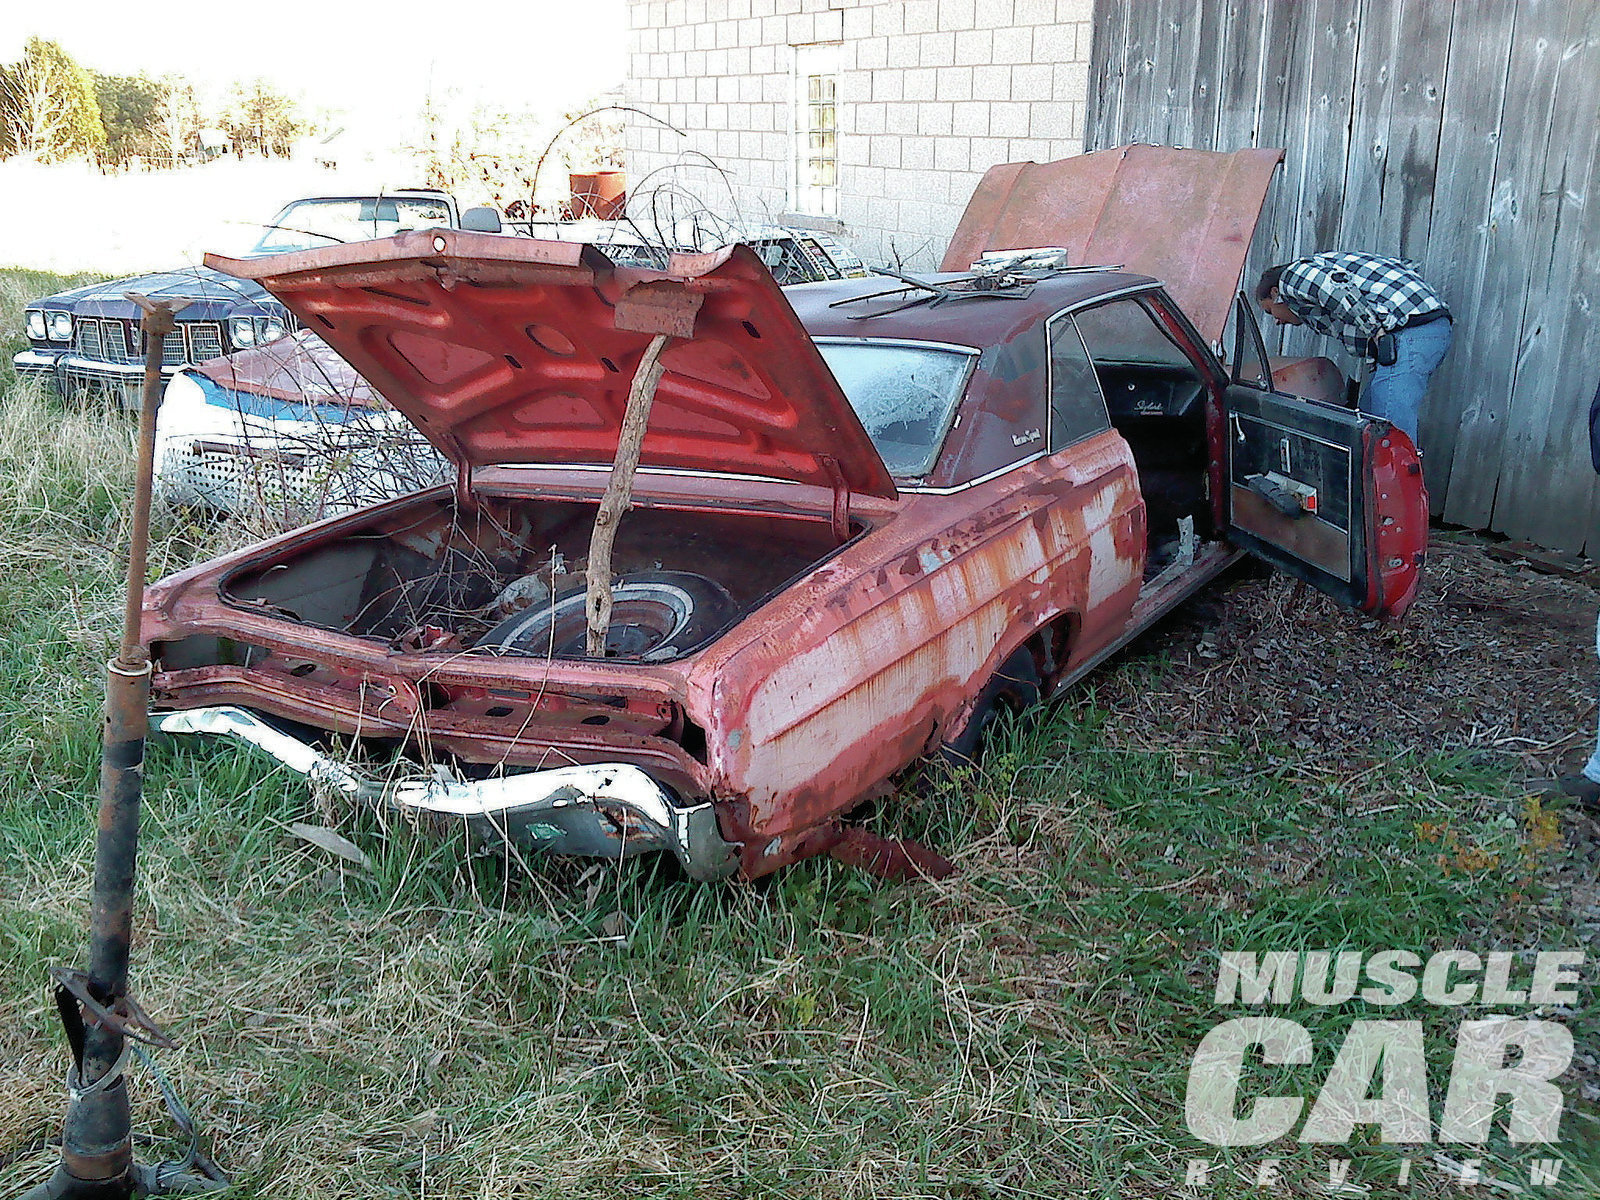 The Buick GS was out of sight behind this barn north of Green Bay, Wisconsin. The fact that people are tracking down cars so far gone reveals the rarity and desirability of this muscle car.